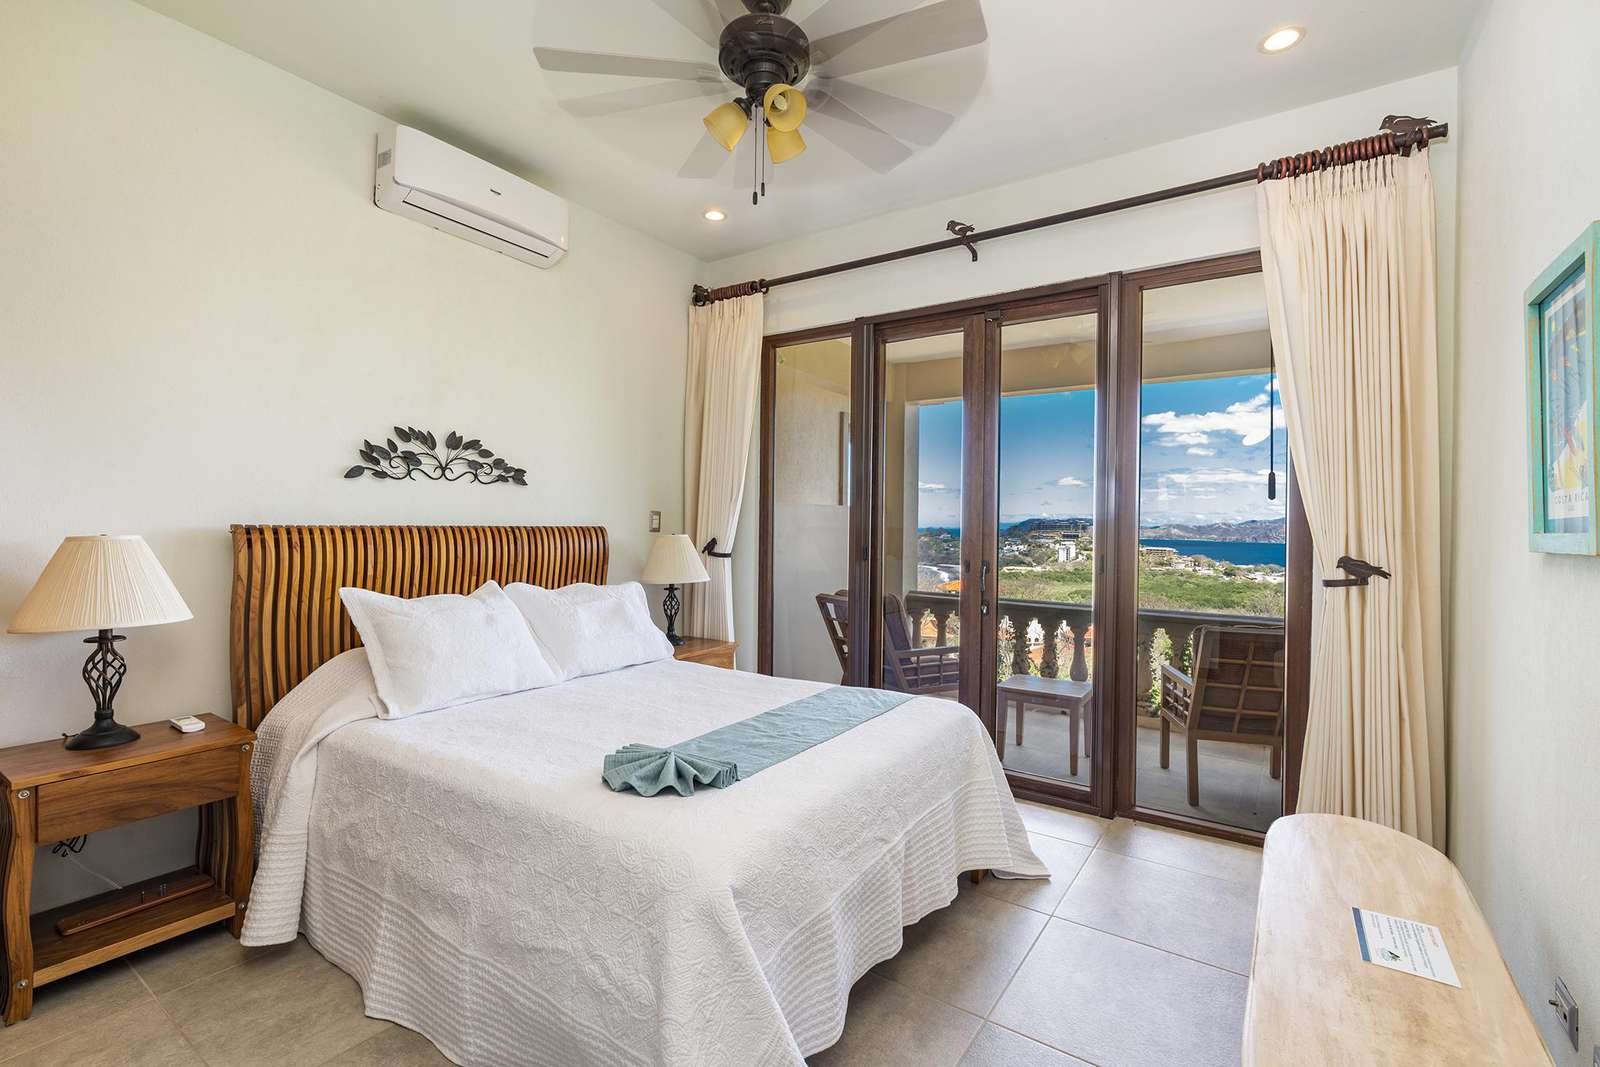 Guest bedroom, private full bathroom, access to private balcony with ocean views